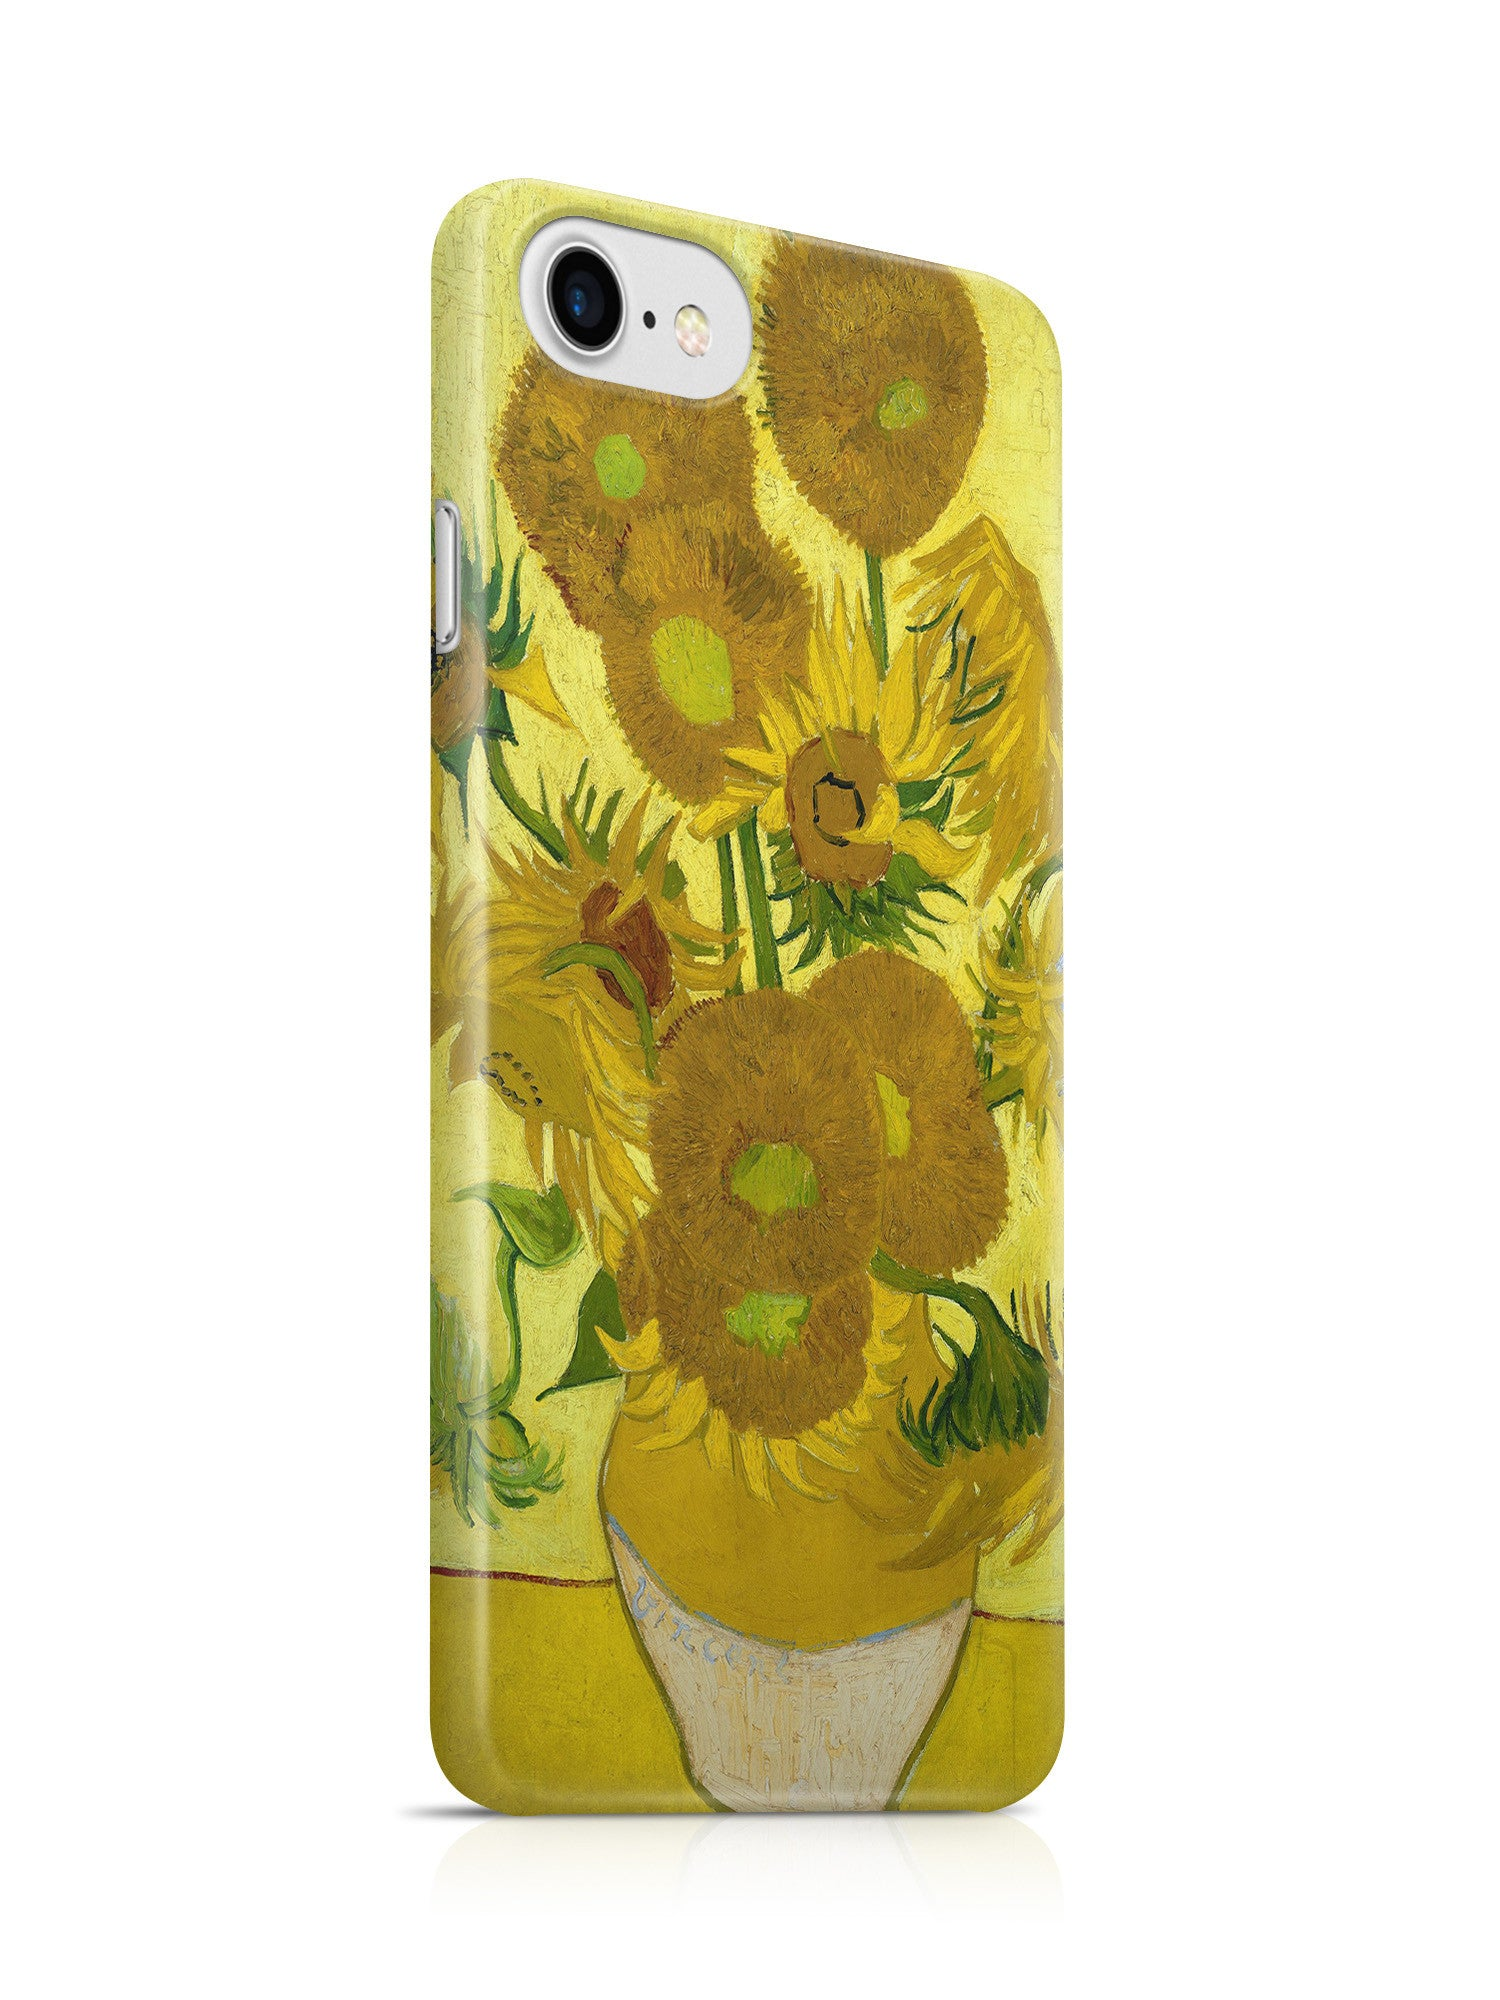 Vinteja Officially Licensed - Van Gogh - Another vase of sunflowers - Curated Case Cover For IPHONE 6/6S